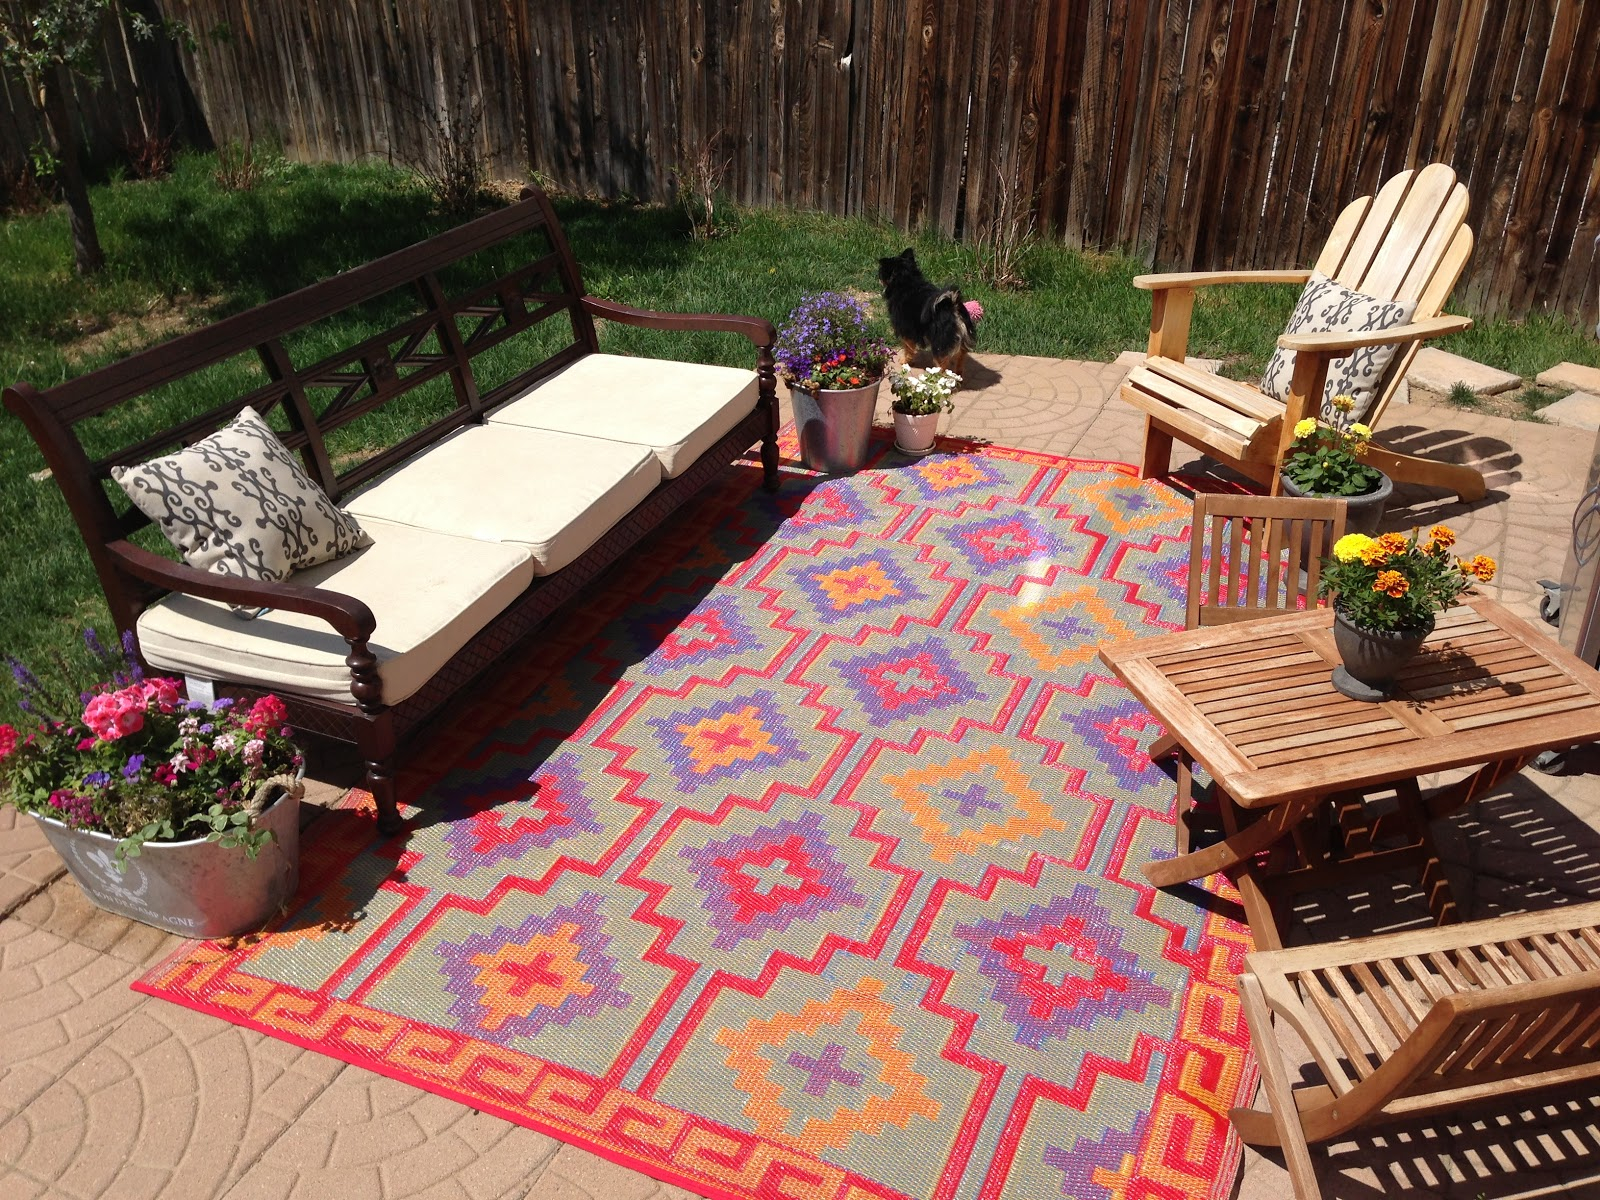 Plastic Outdoor Rugs Uk Design Idea And Decorations Plastic intended for measurements 1600 X 1200